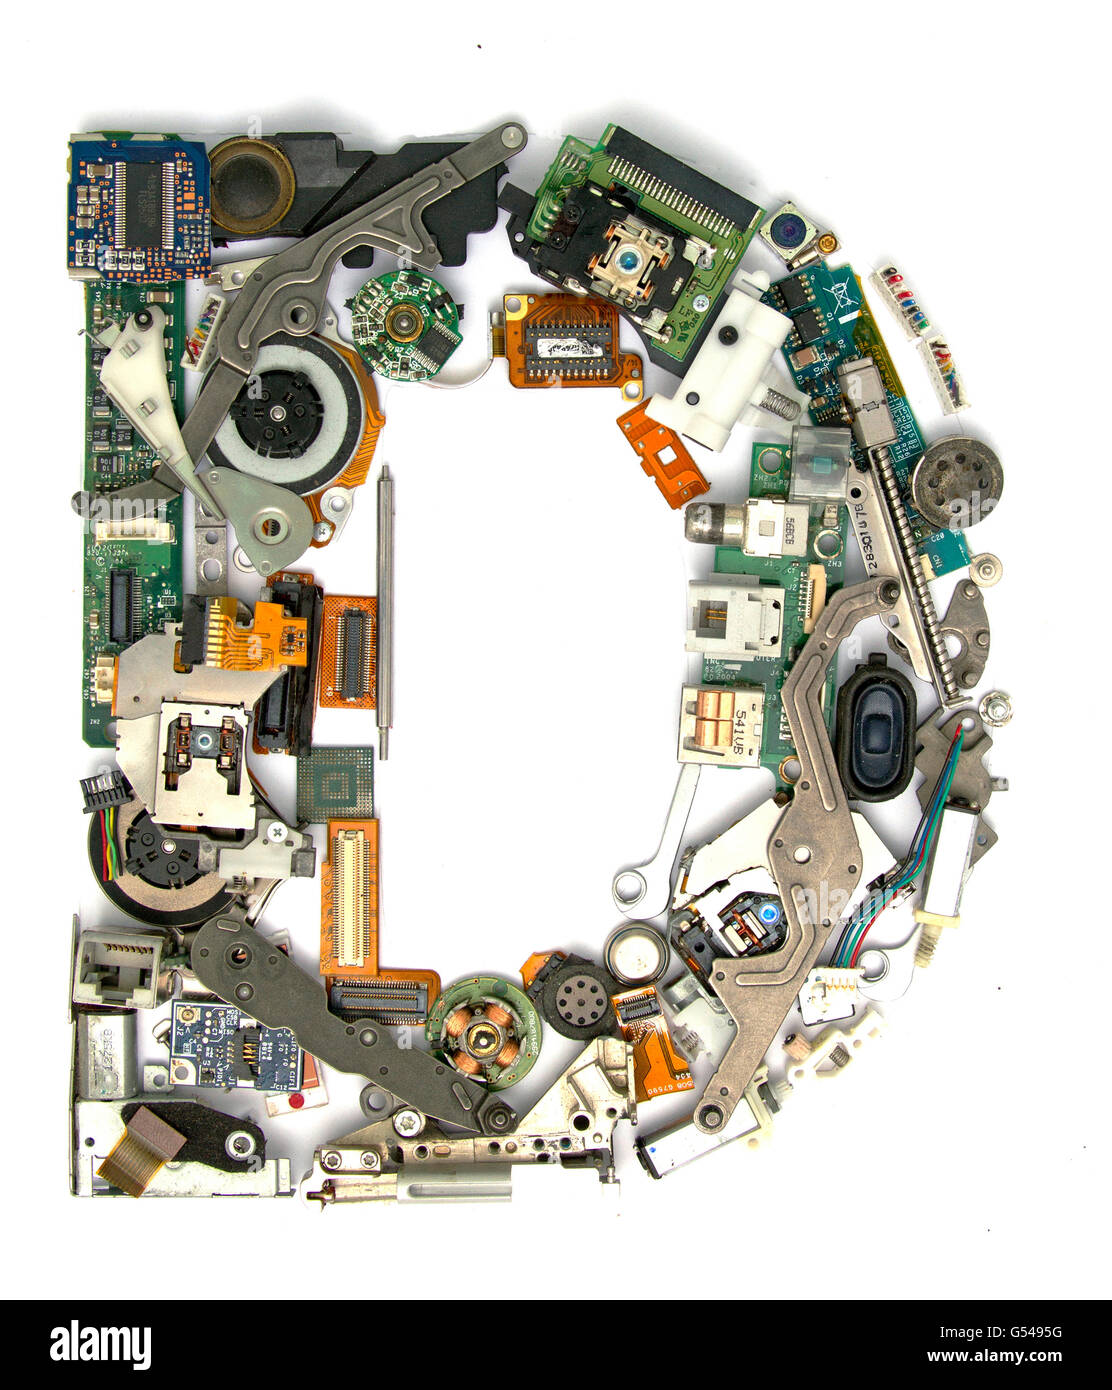 Letter Made Out Of Objects.The Letter D Made Up From Old Electronic Parts Stock Photo